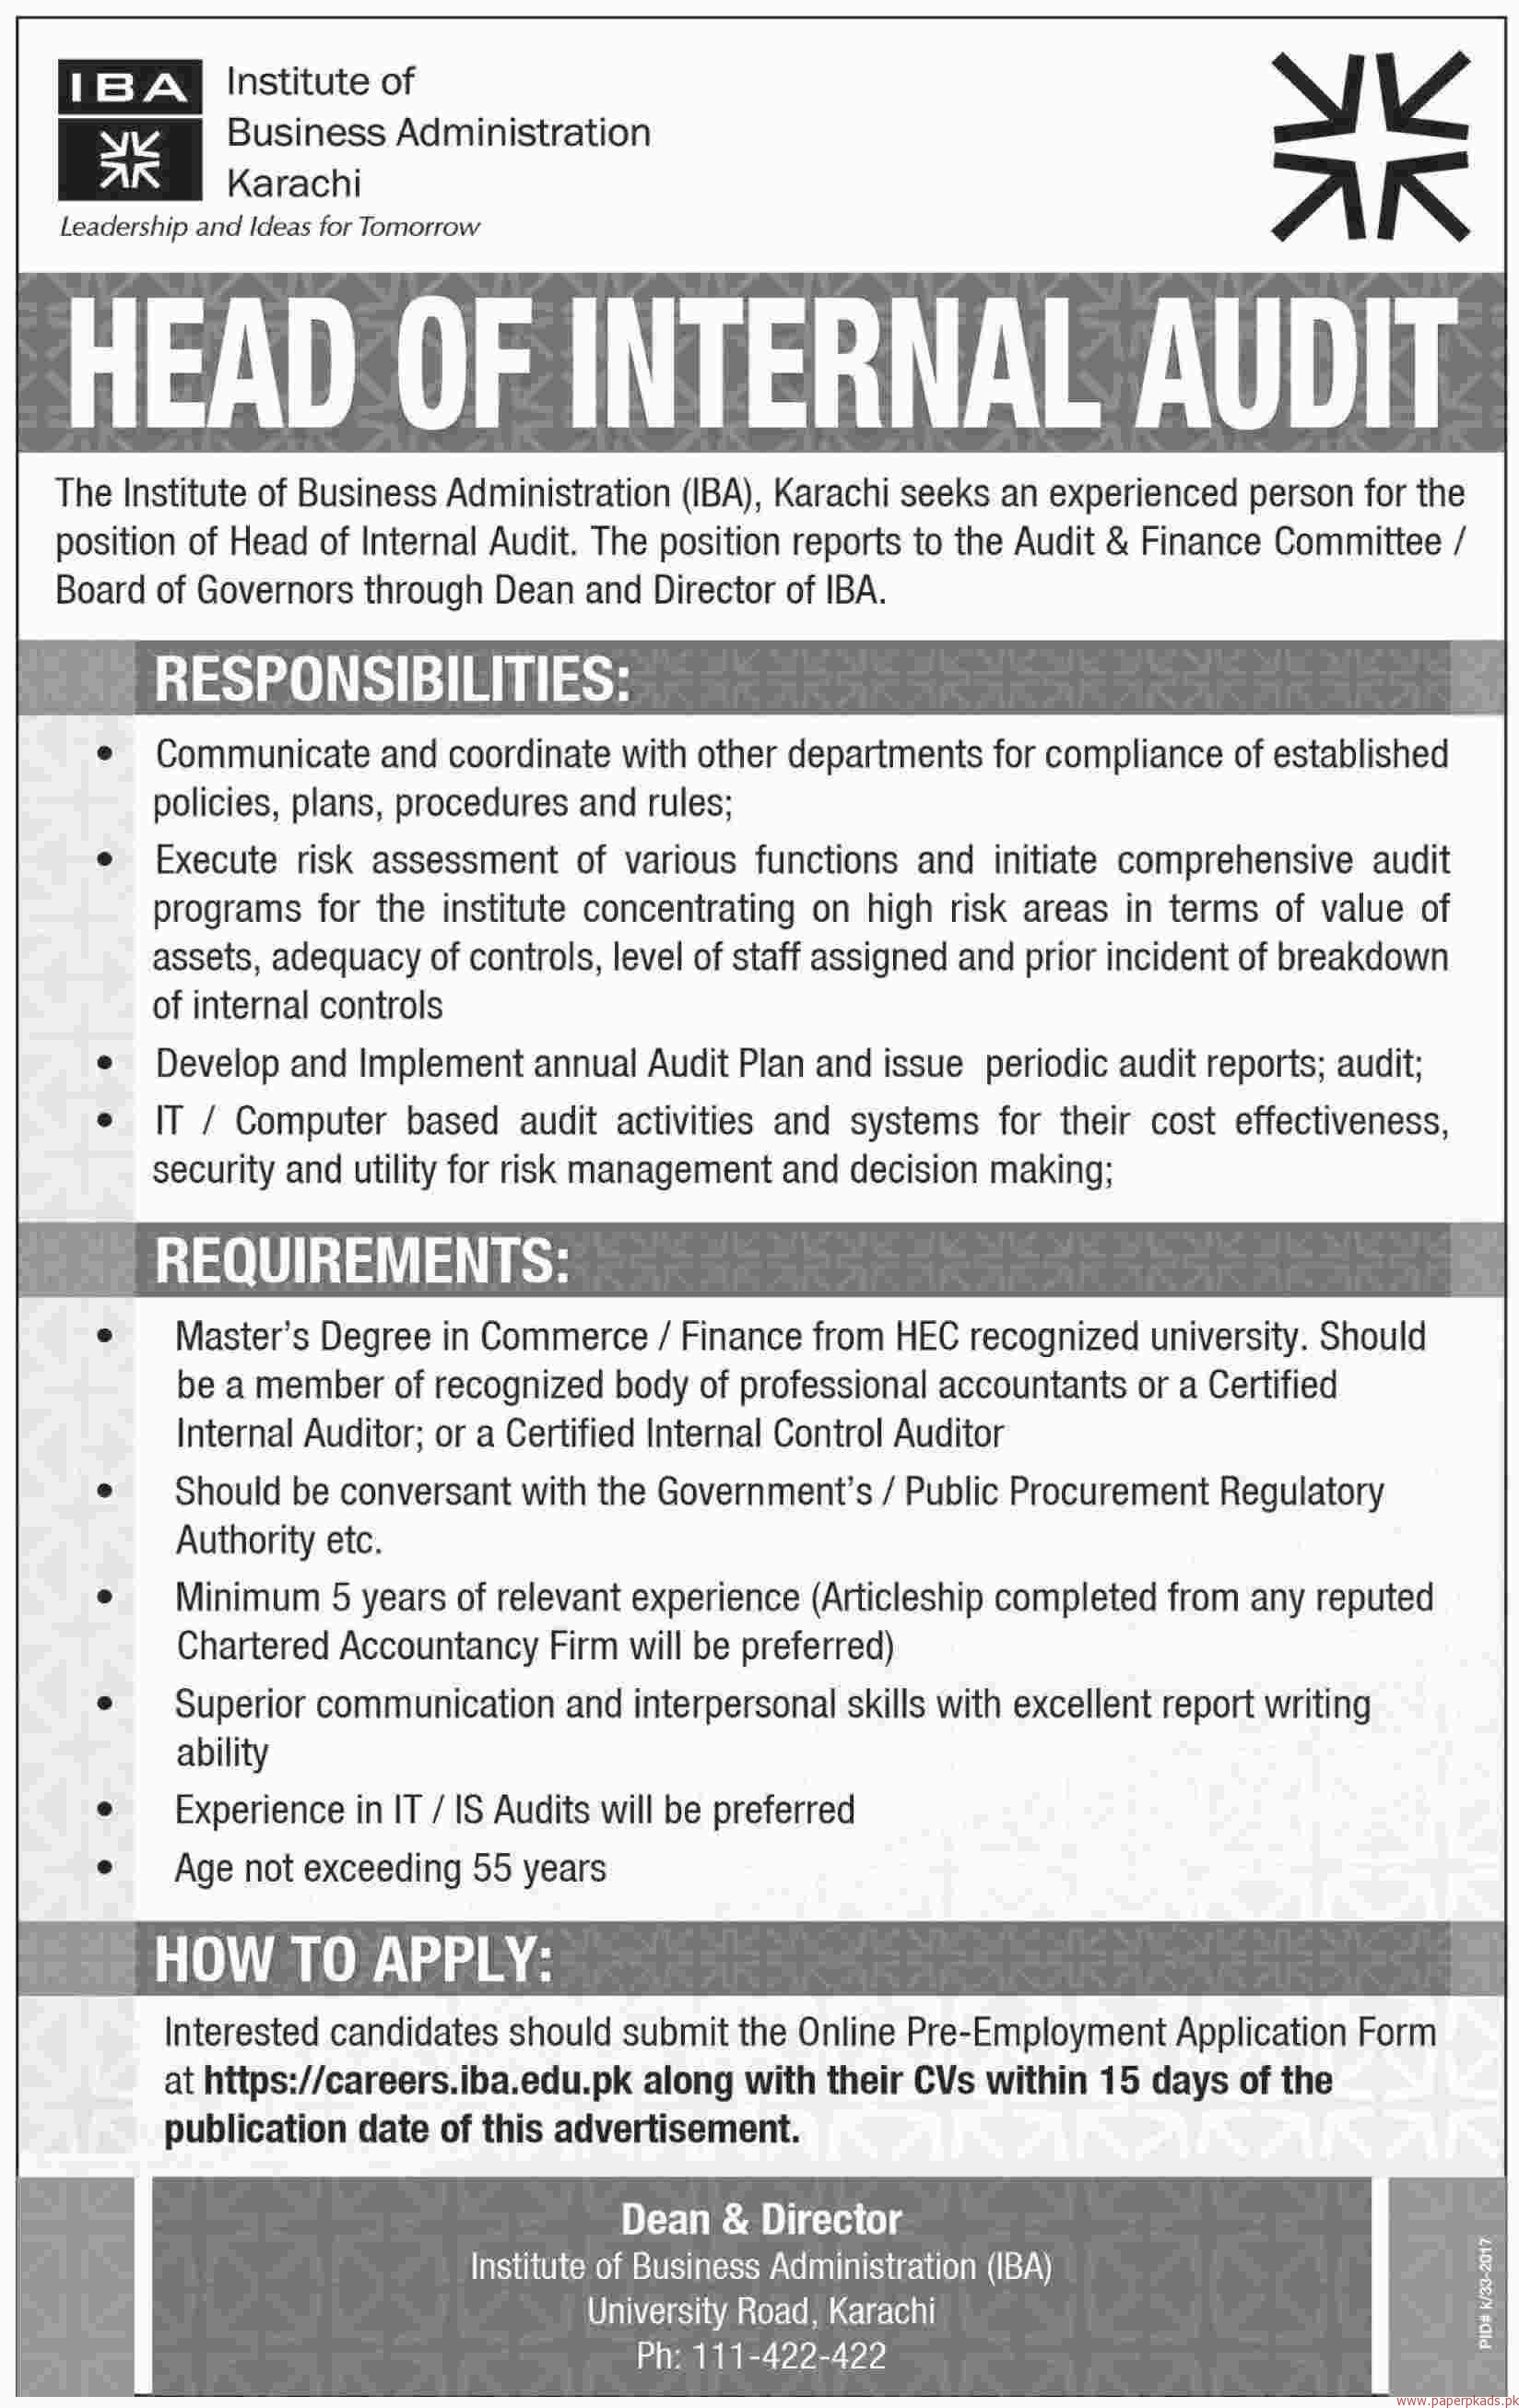 institute of business administration karachi jobs paperpk